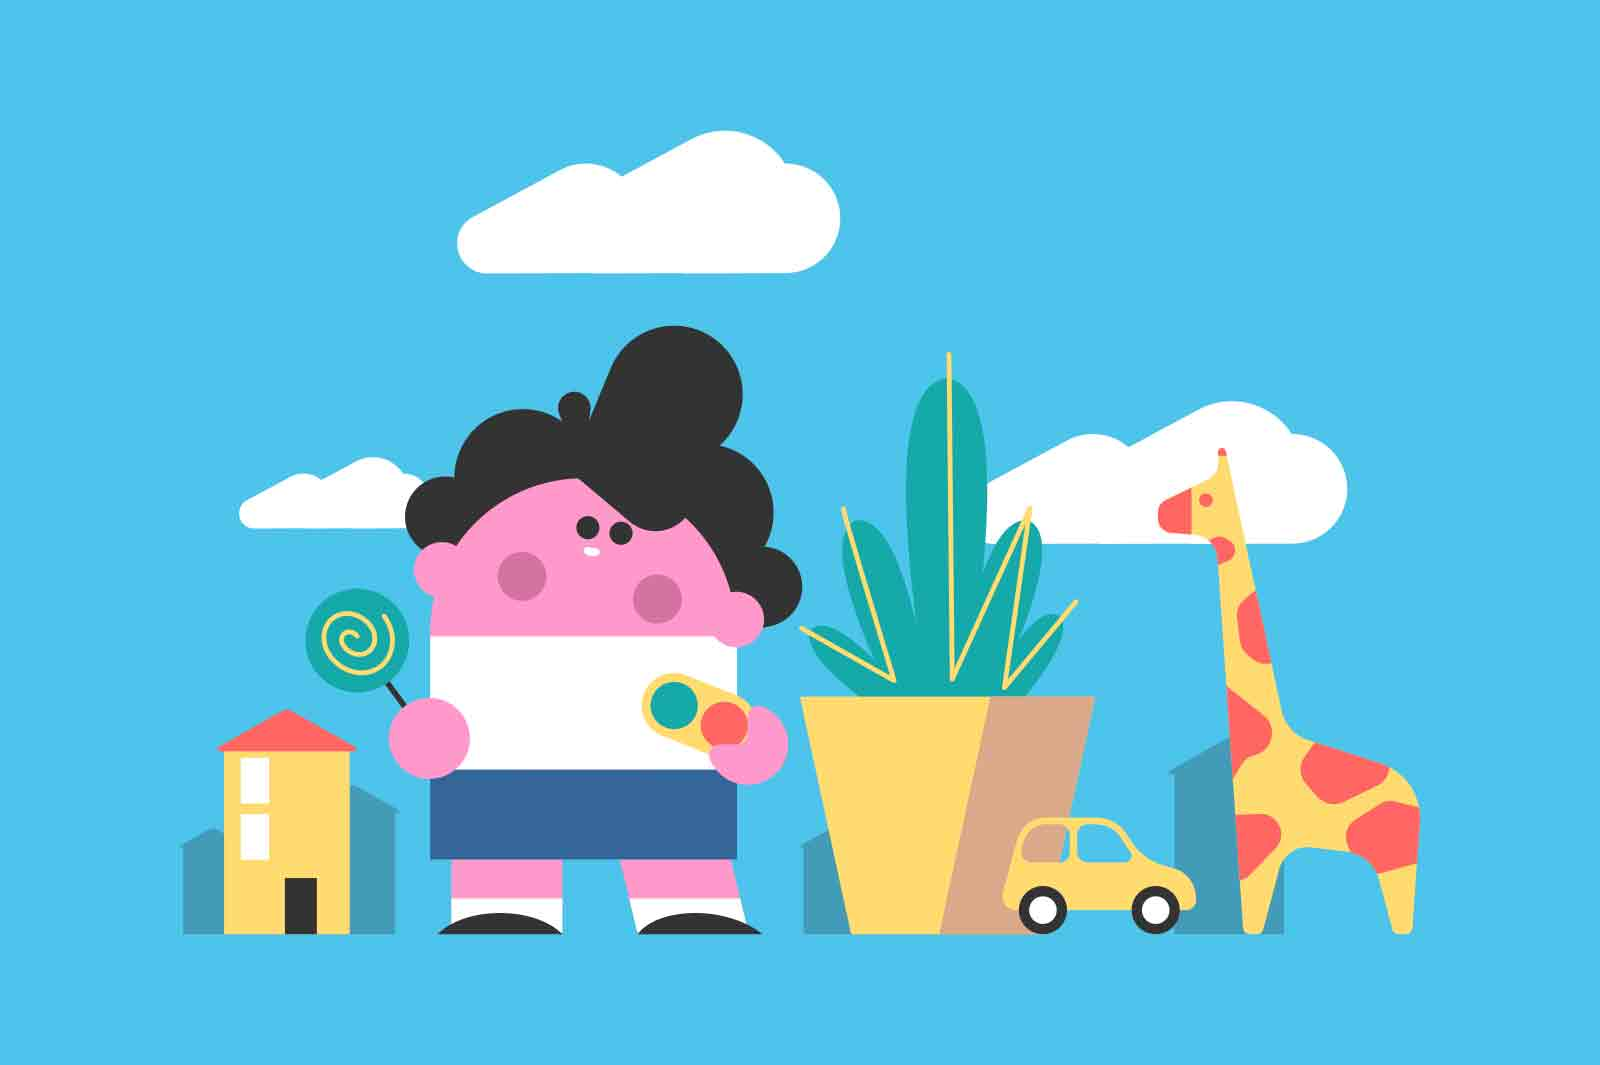 Baby boy walking with lollipop vector illustration. Child licking candy on stick in park flat style. Childhood, sweets, snack concept